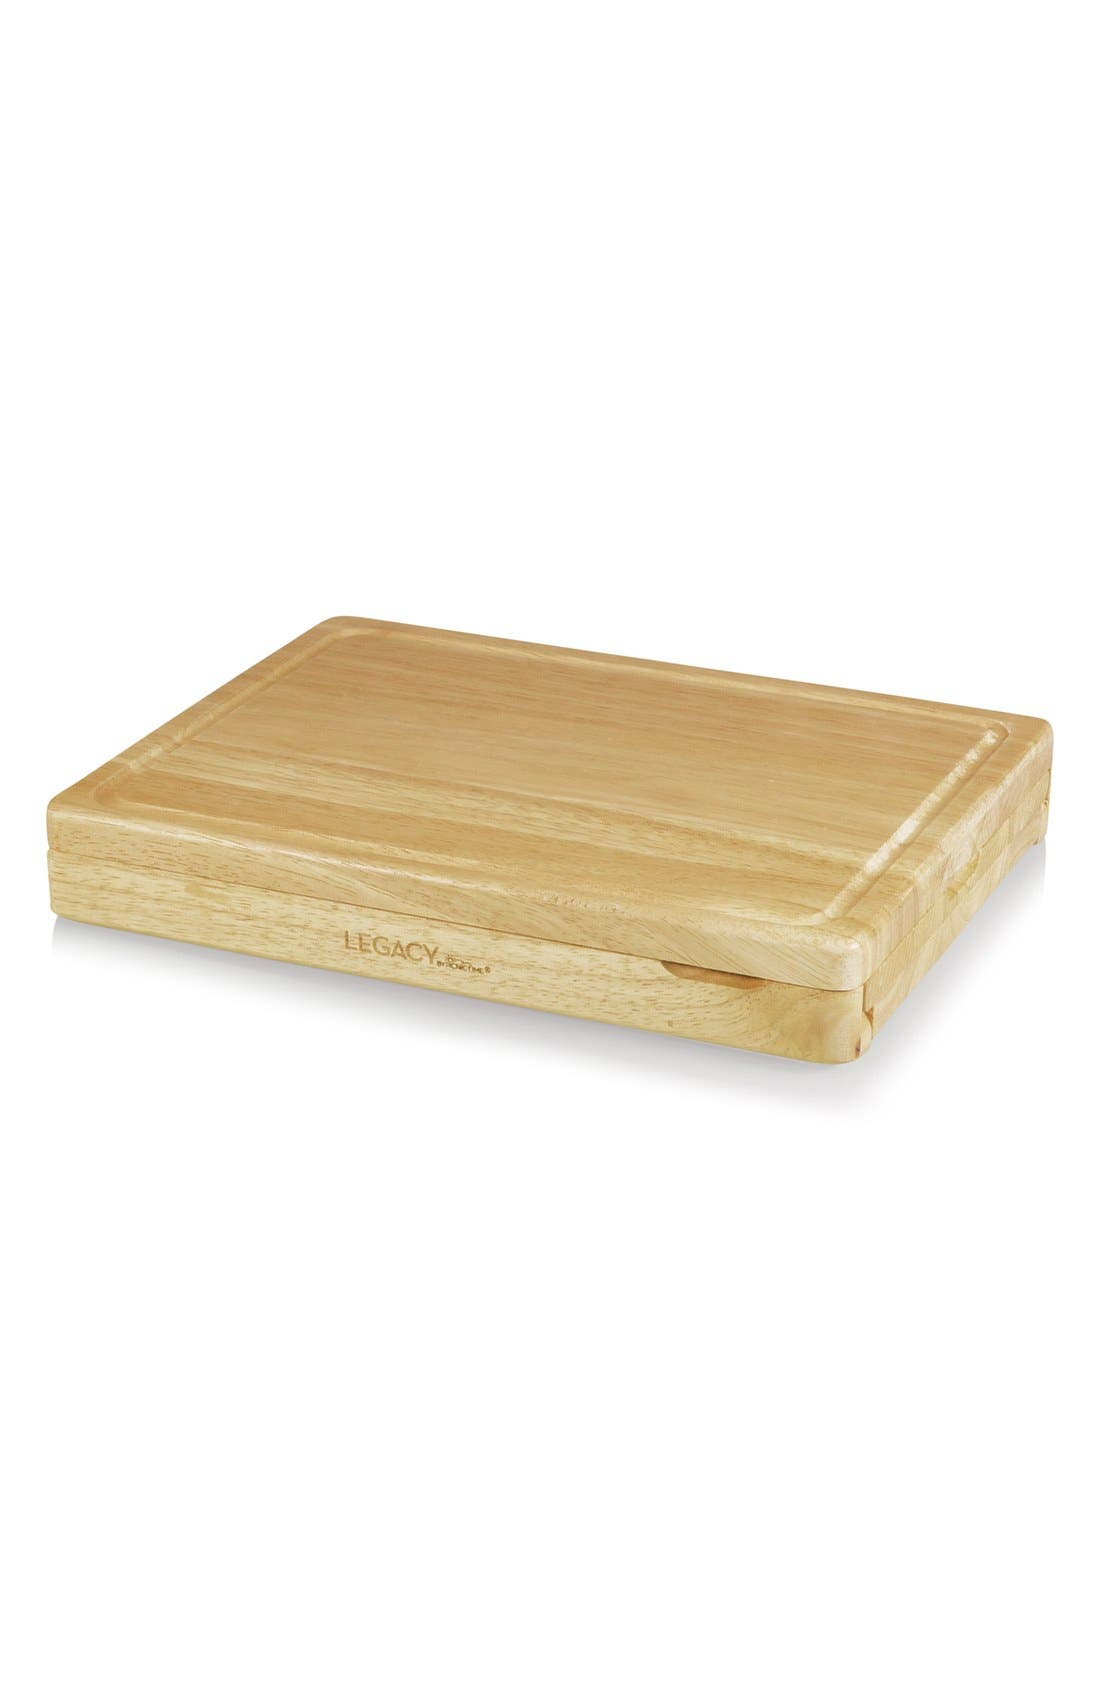 'Asiago' Cutting Board & Cheese Tools,                             Alternate thumbnail 2, color,                             Brown